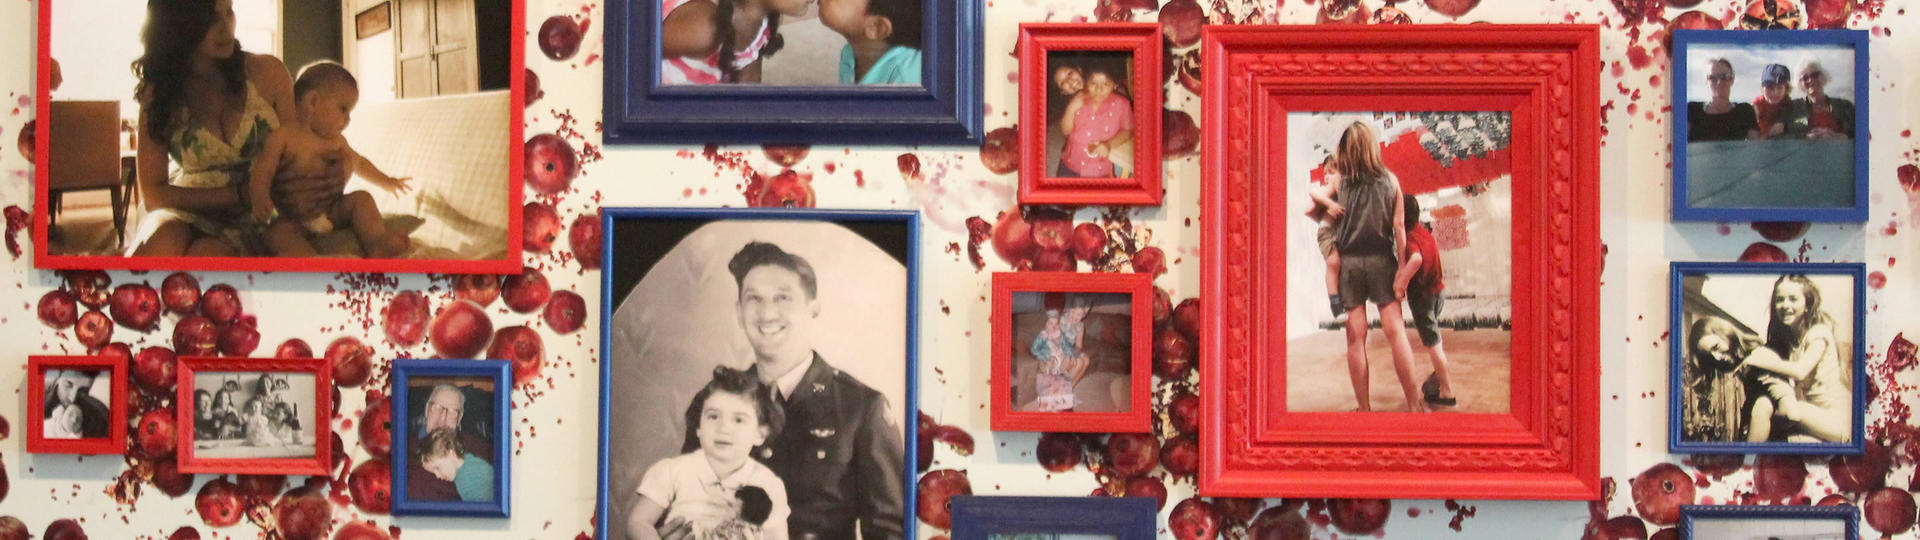 Various photographs of people framed in red and blue frames on a wall covered in wallpaper with a pattern of pomegranites